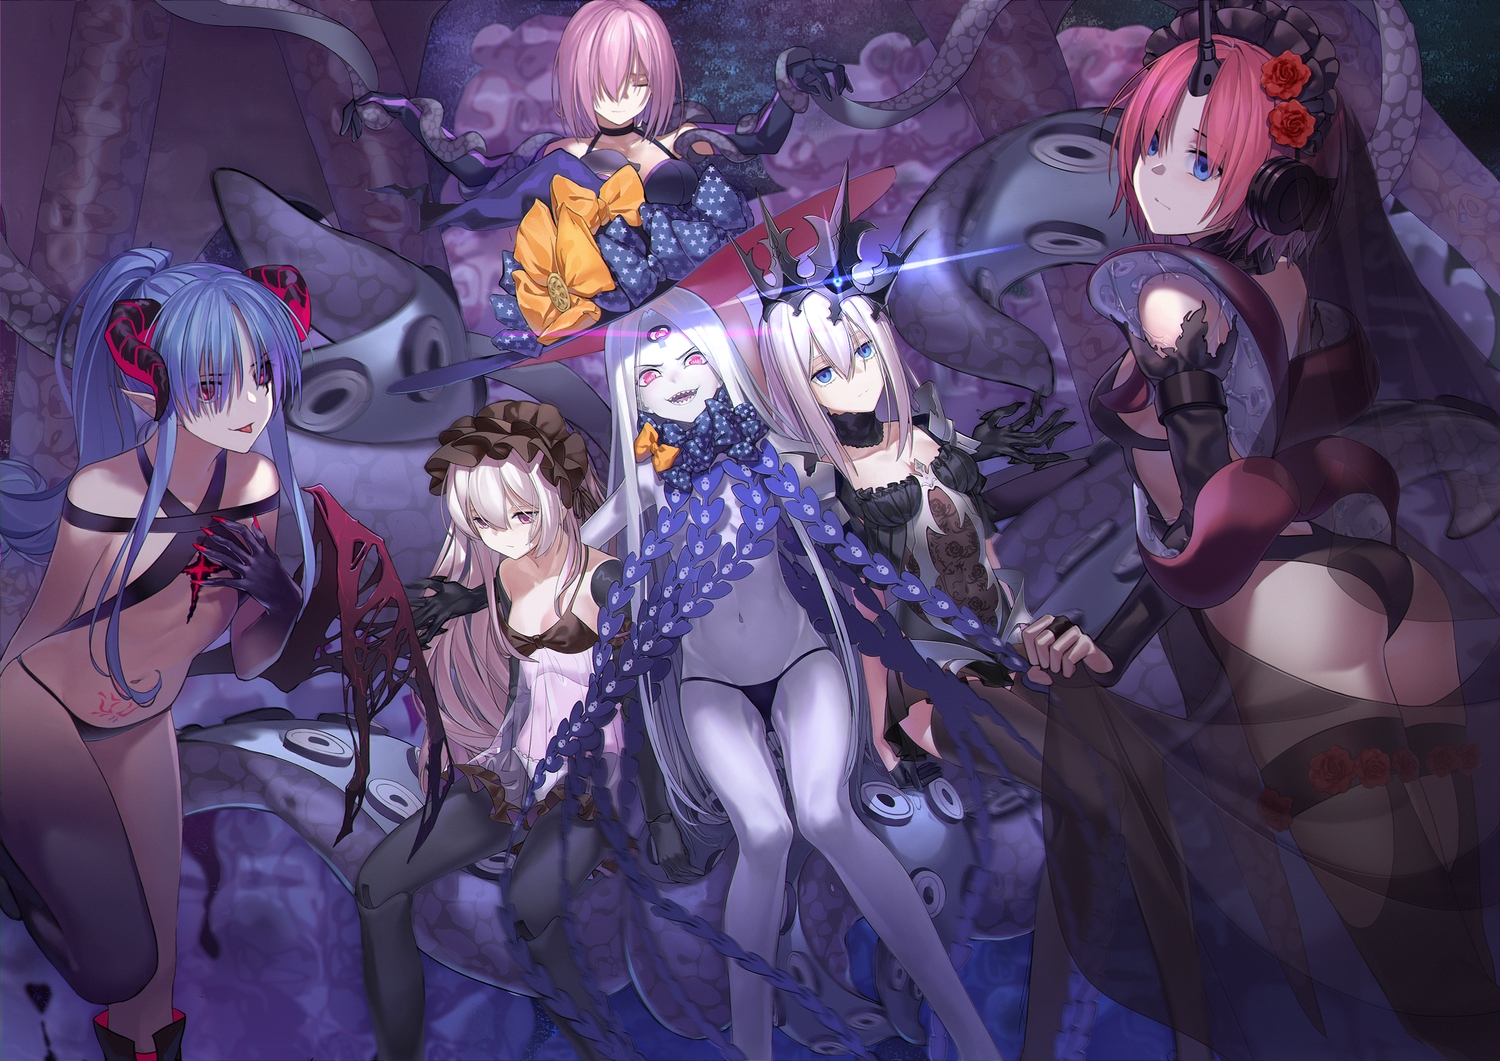 abigail_williams_(fate/grand_order) ass bikini blonde_hair blue_eyes blue_hair bondage bow caster_lily doll dress elbow_gloves fate/grand_order fate_(series) frankenstein gloves group hat horns long_hair marie_antoinette_(fate/grand_order) mash_kyrielight navel nursery_rhyme_(fate/extra) pantyhose pink_eyes pink_hair pointed_ears ponytail purple_eyes qiong_sheng see_through short_hair swimsuit tentacles thighhighs white_hair wings